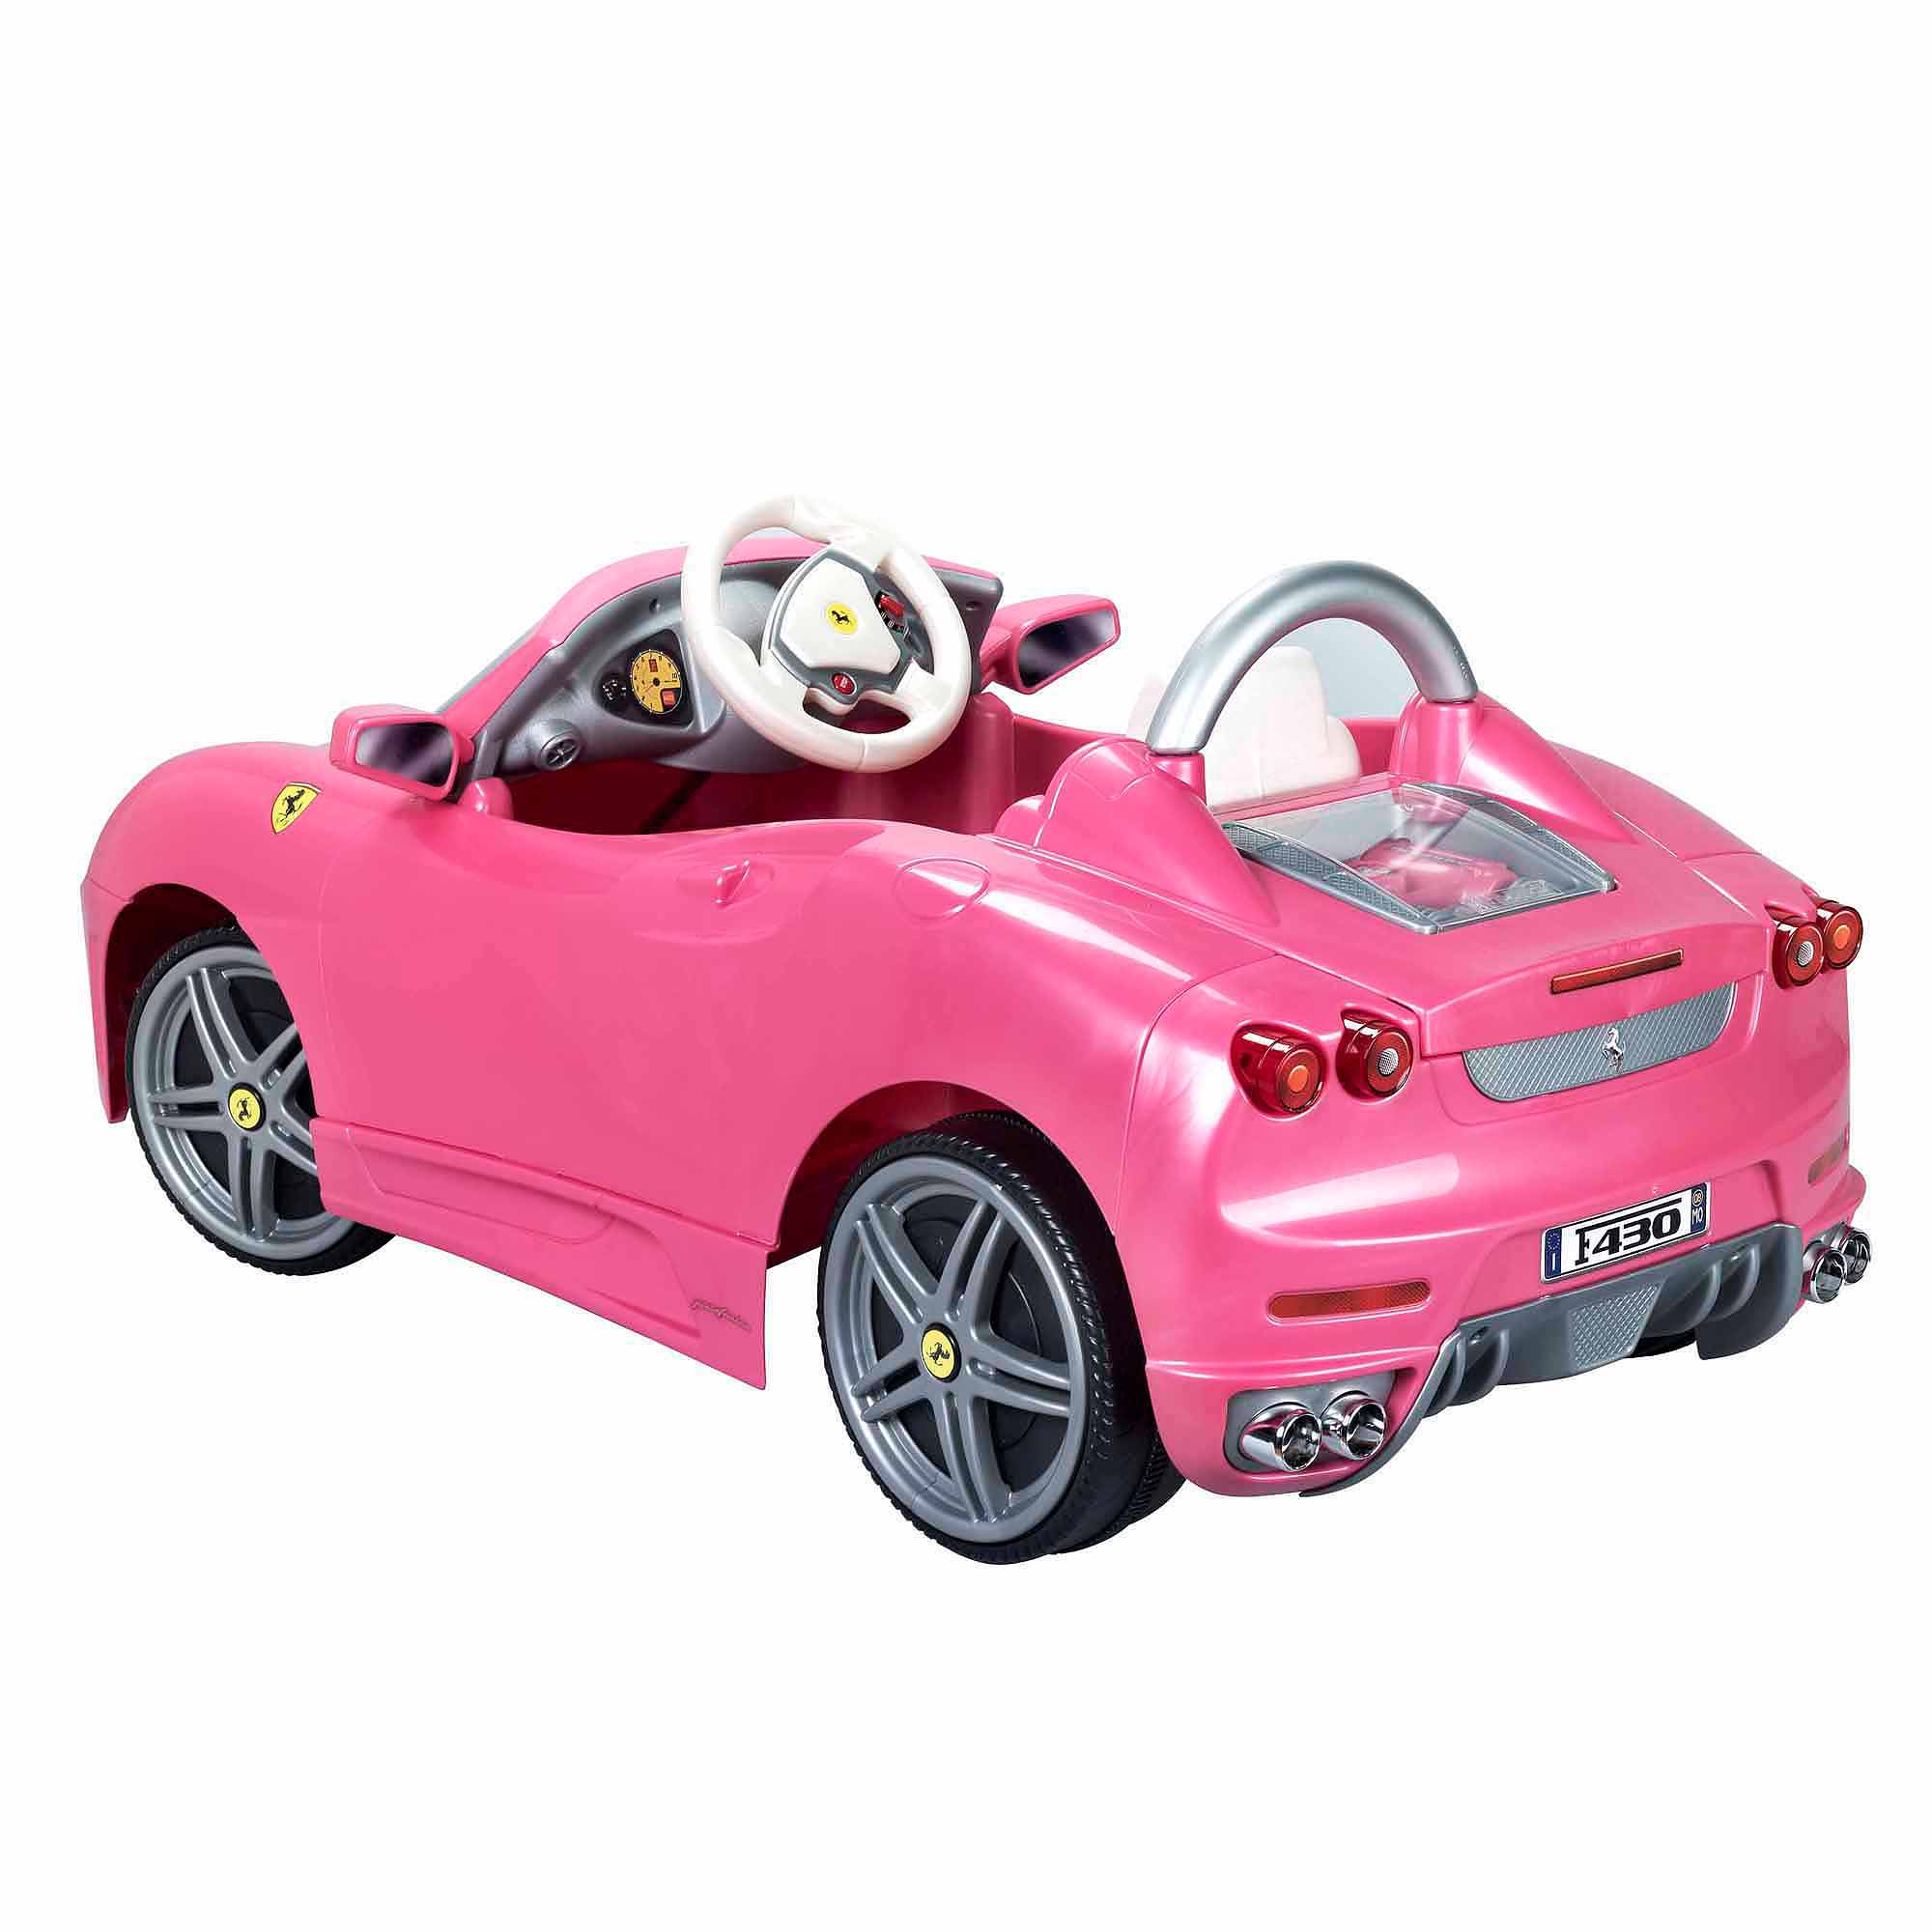 Ferrari F430 6-Volt Battery-Powered Ride-On, Pink